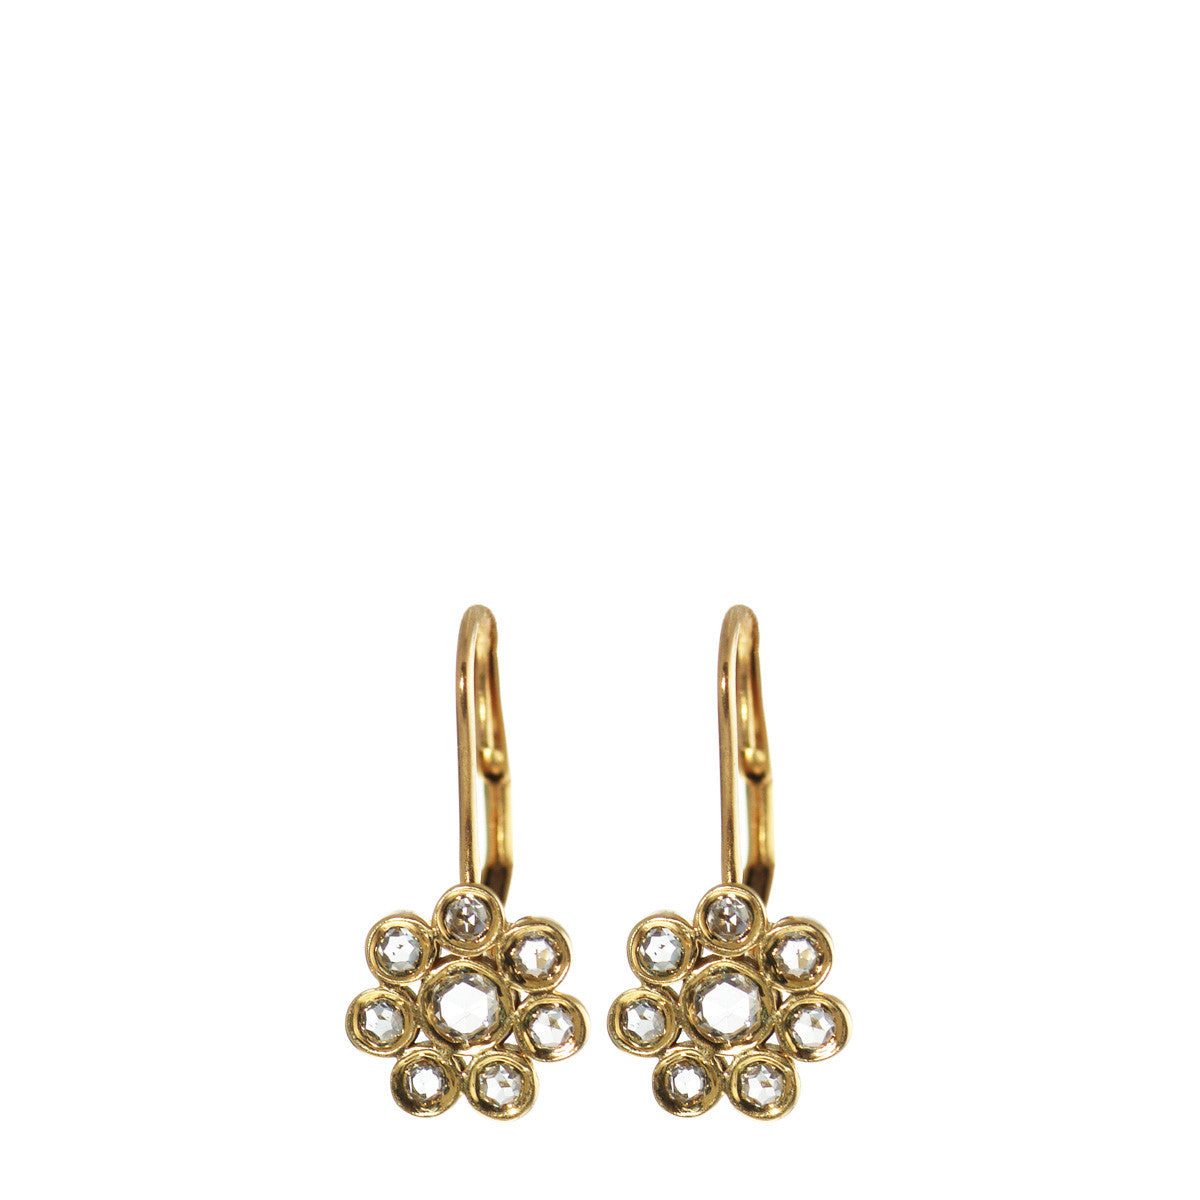 18K Gold Small Diamond Flower Earrings